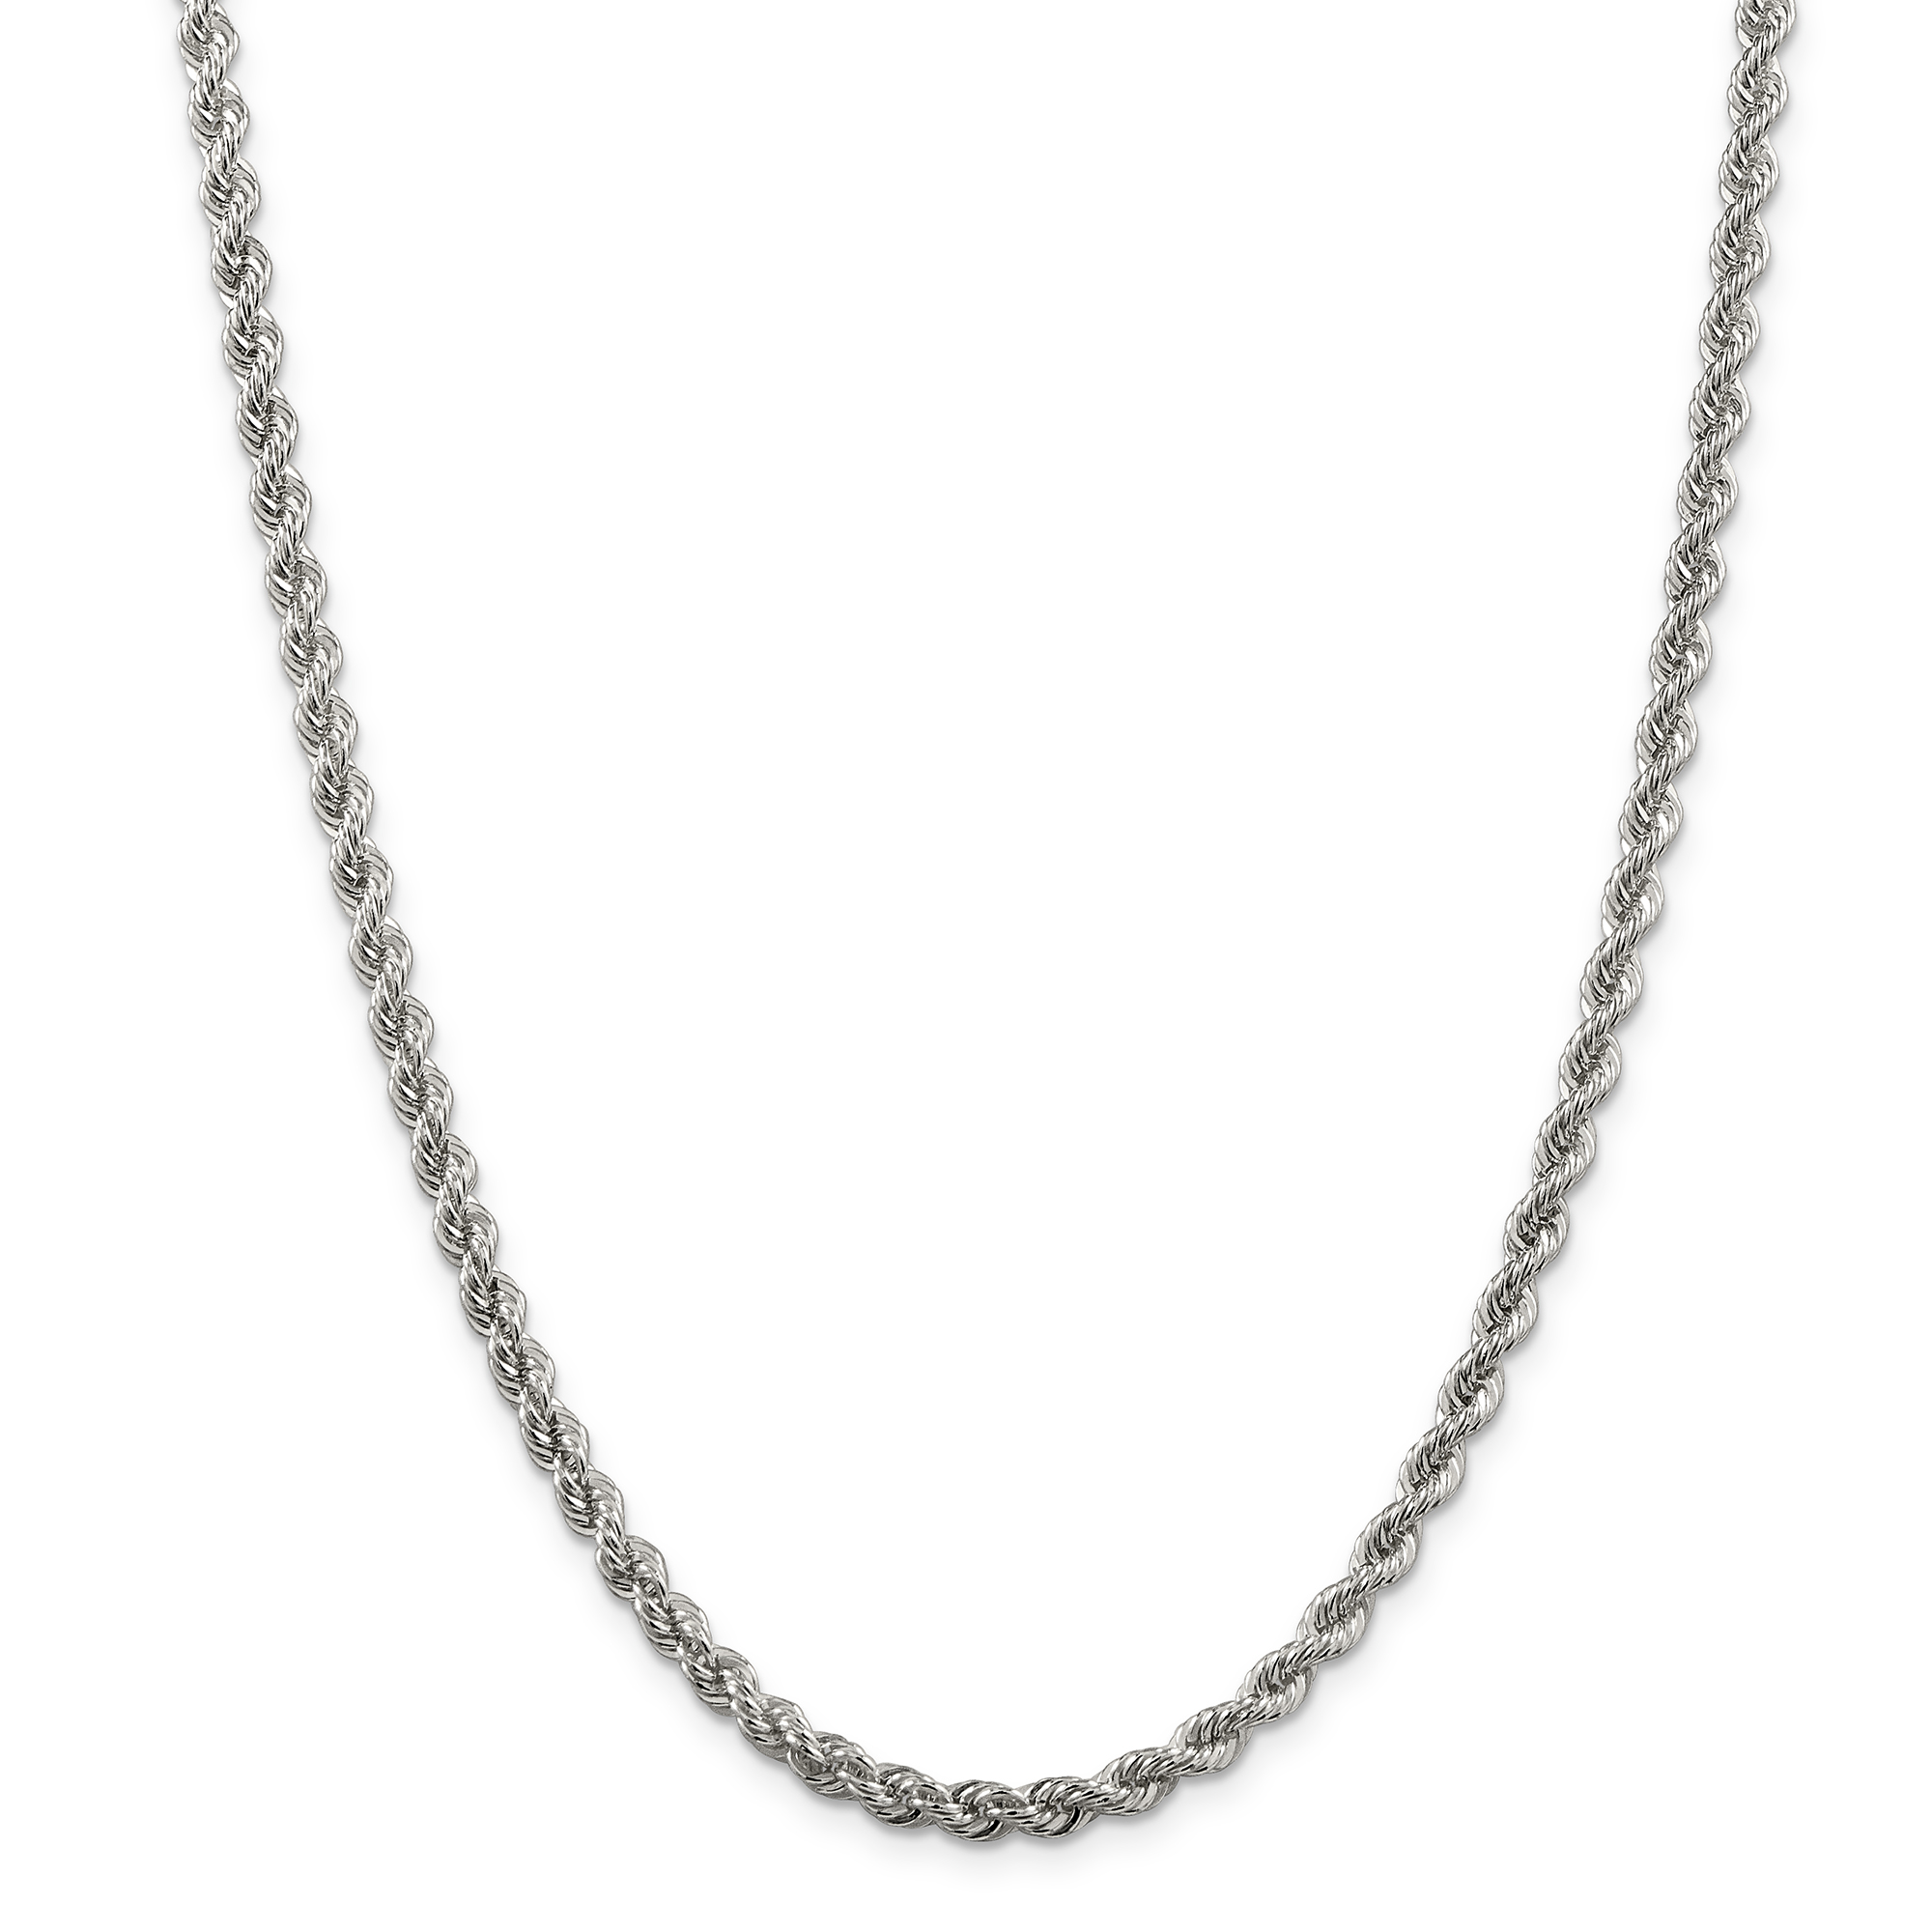 925 Sterling Silver 4.3mm Solid Link Rope Chain Necklace 24 Inch ... 7e0b117c1a